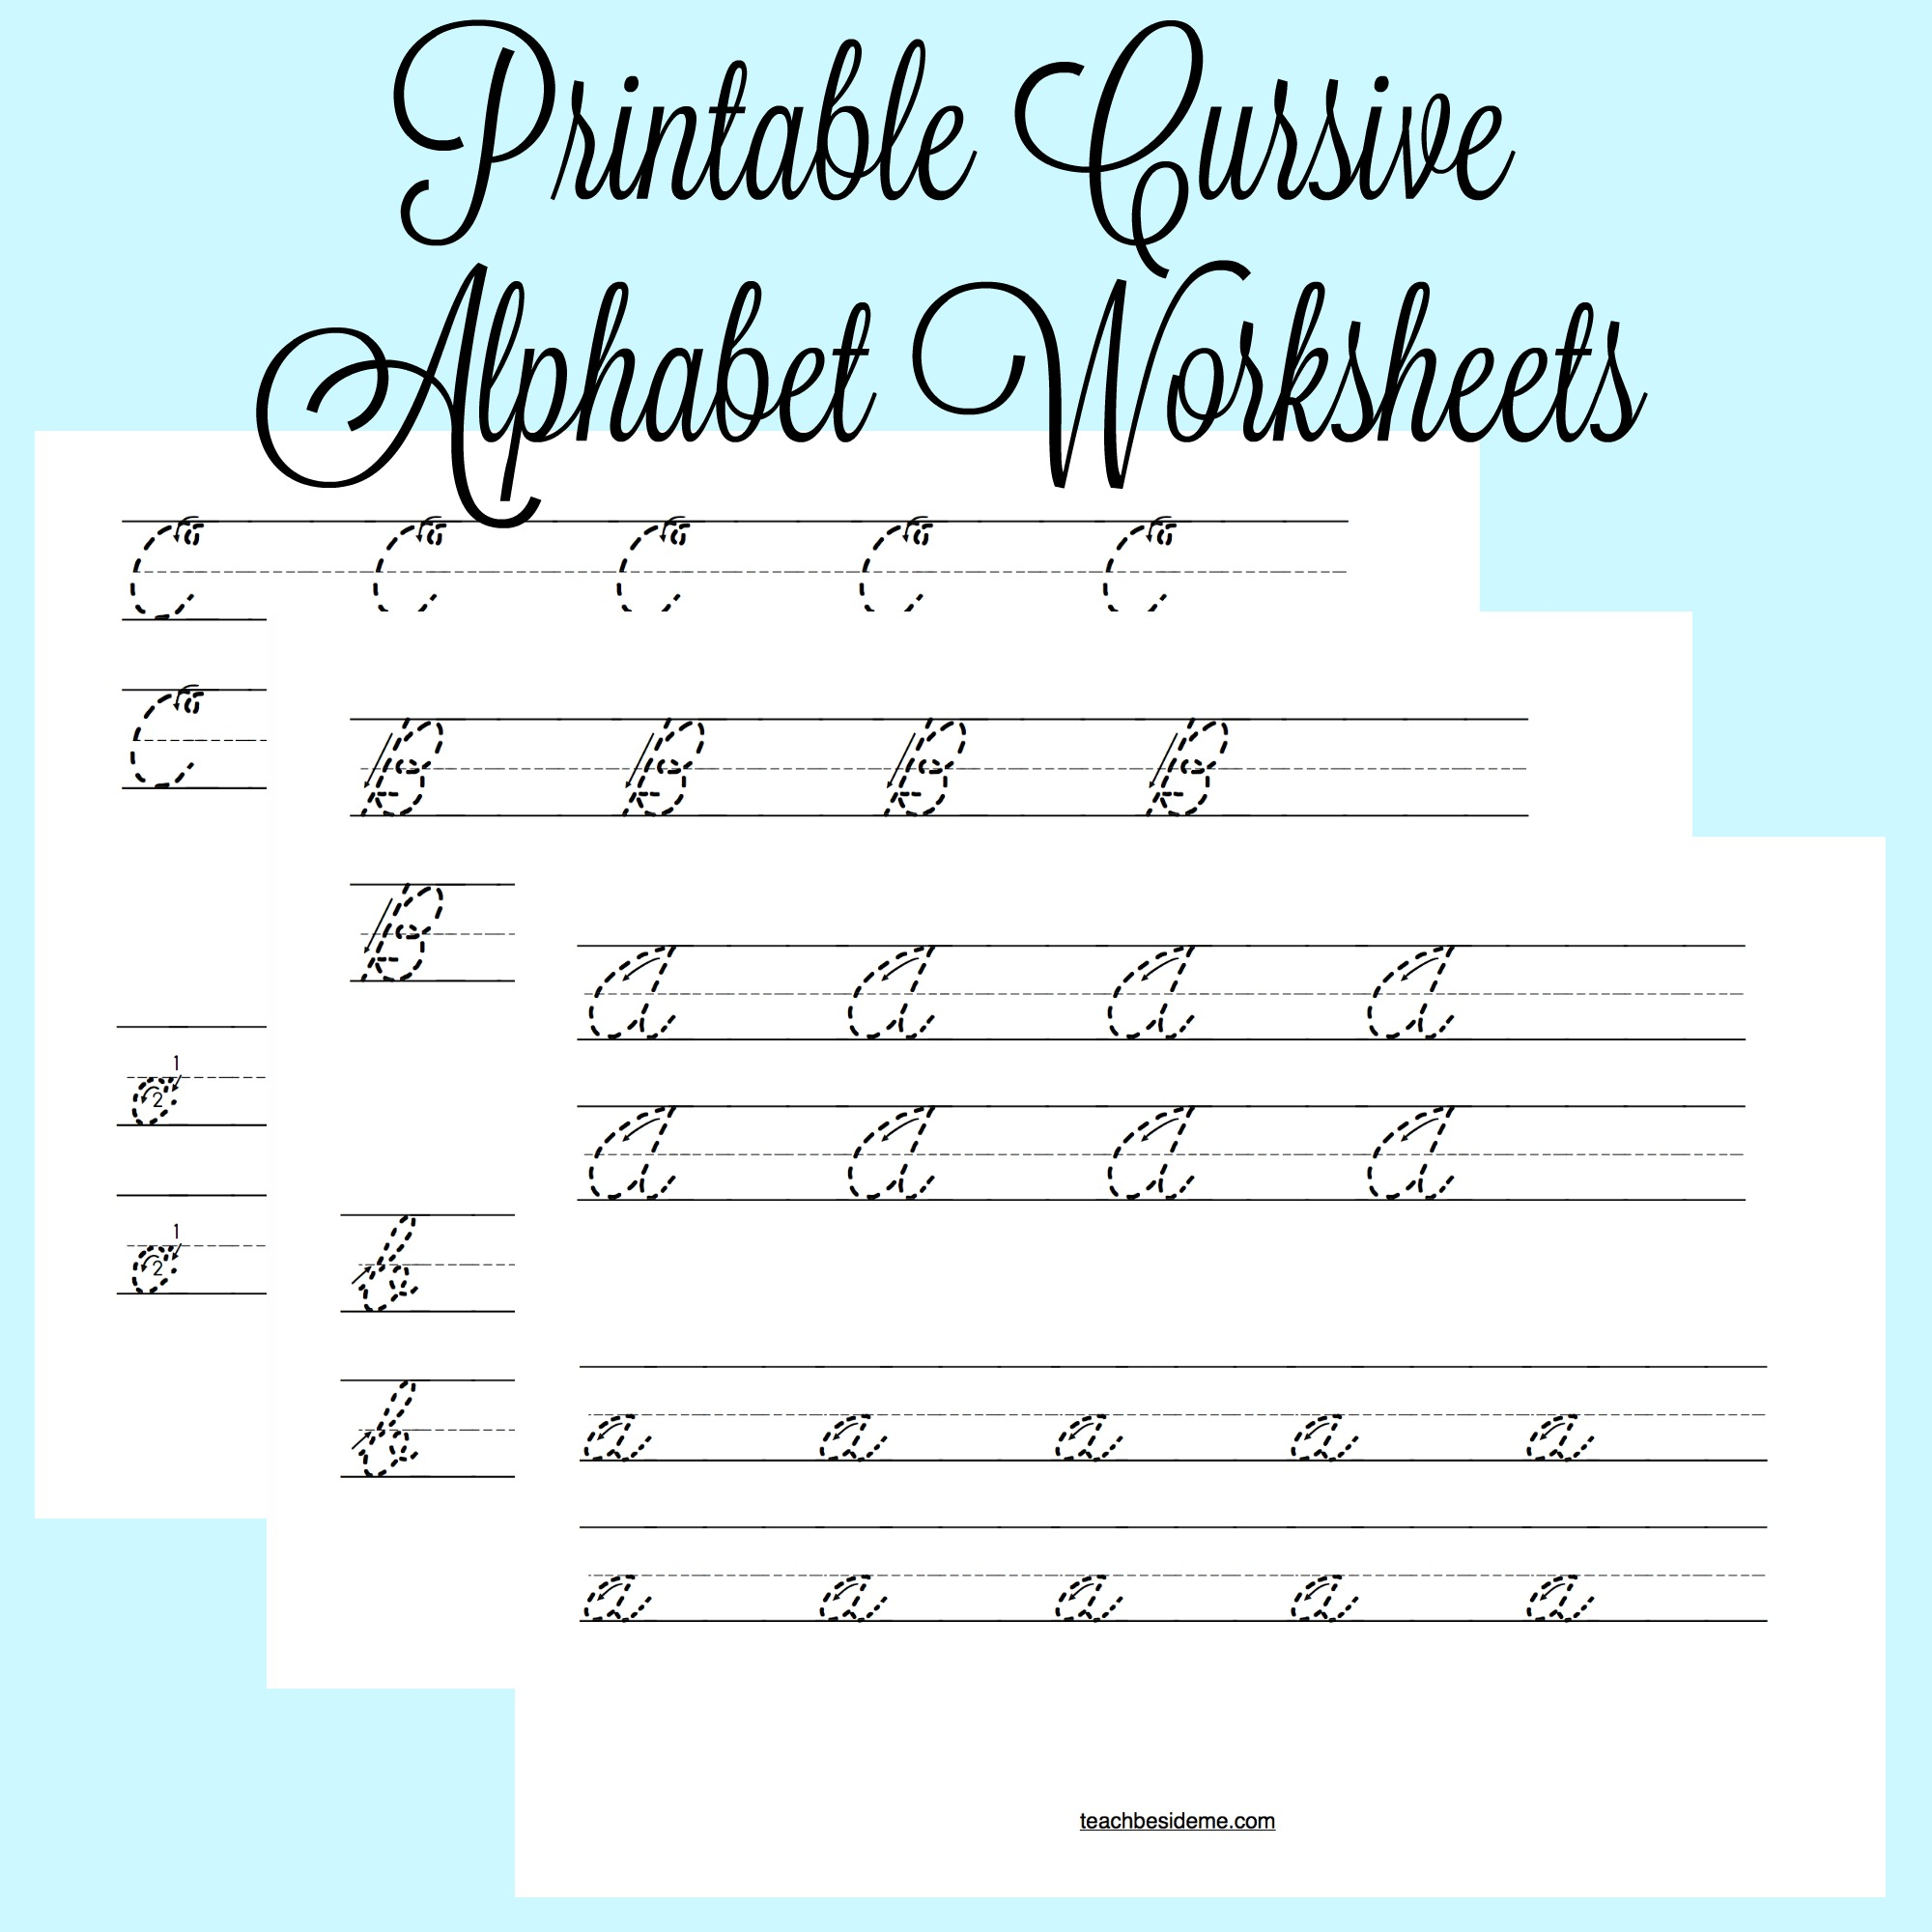 printable cursive alphabet worksheets teach beside me